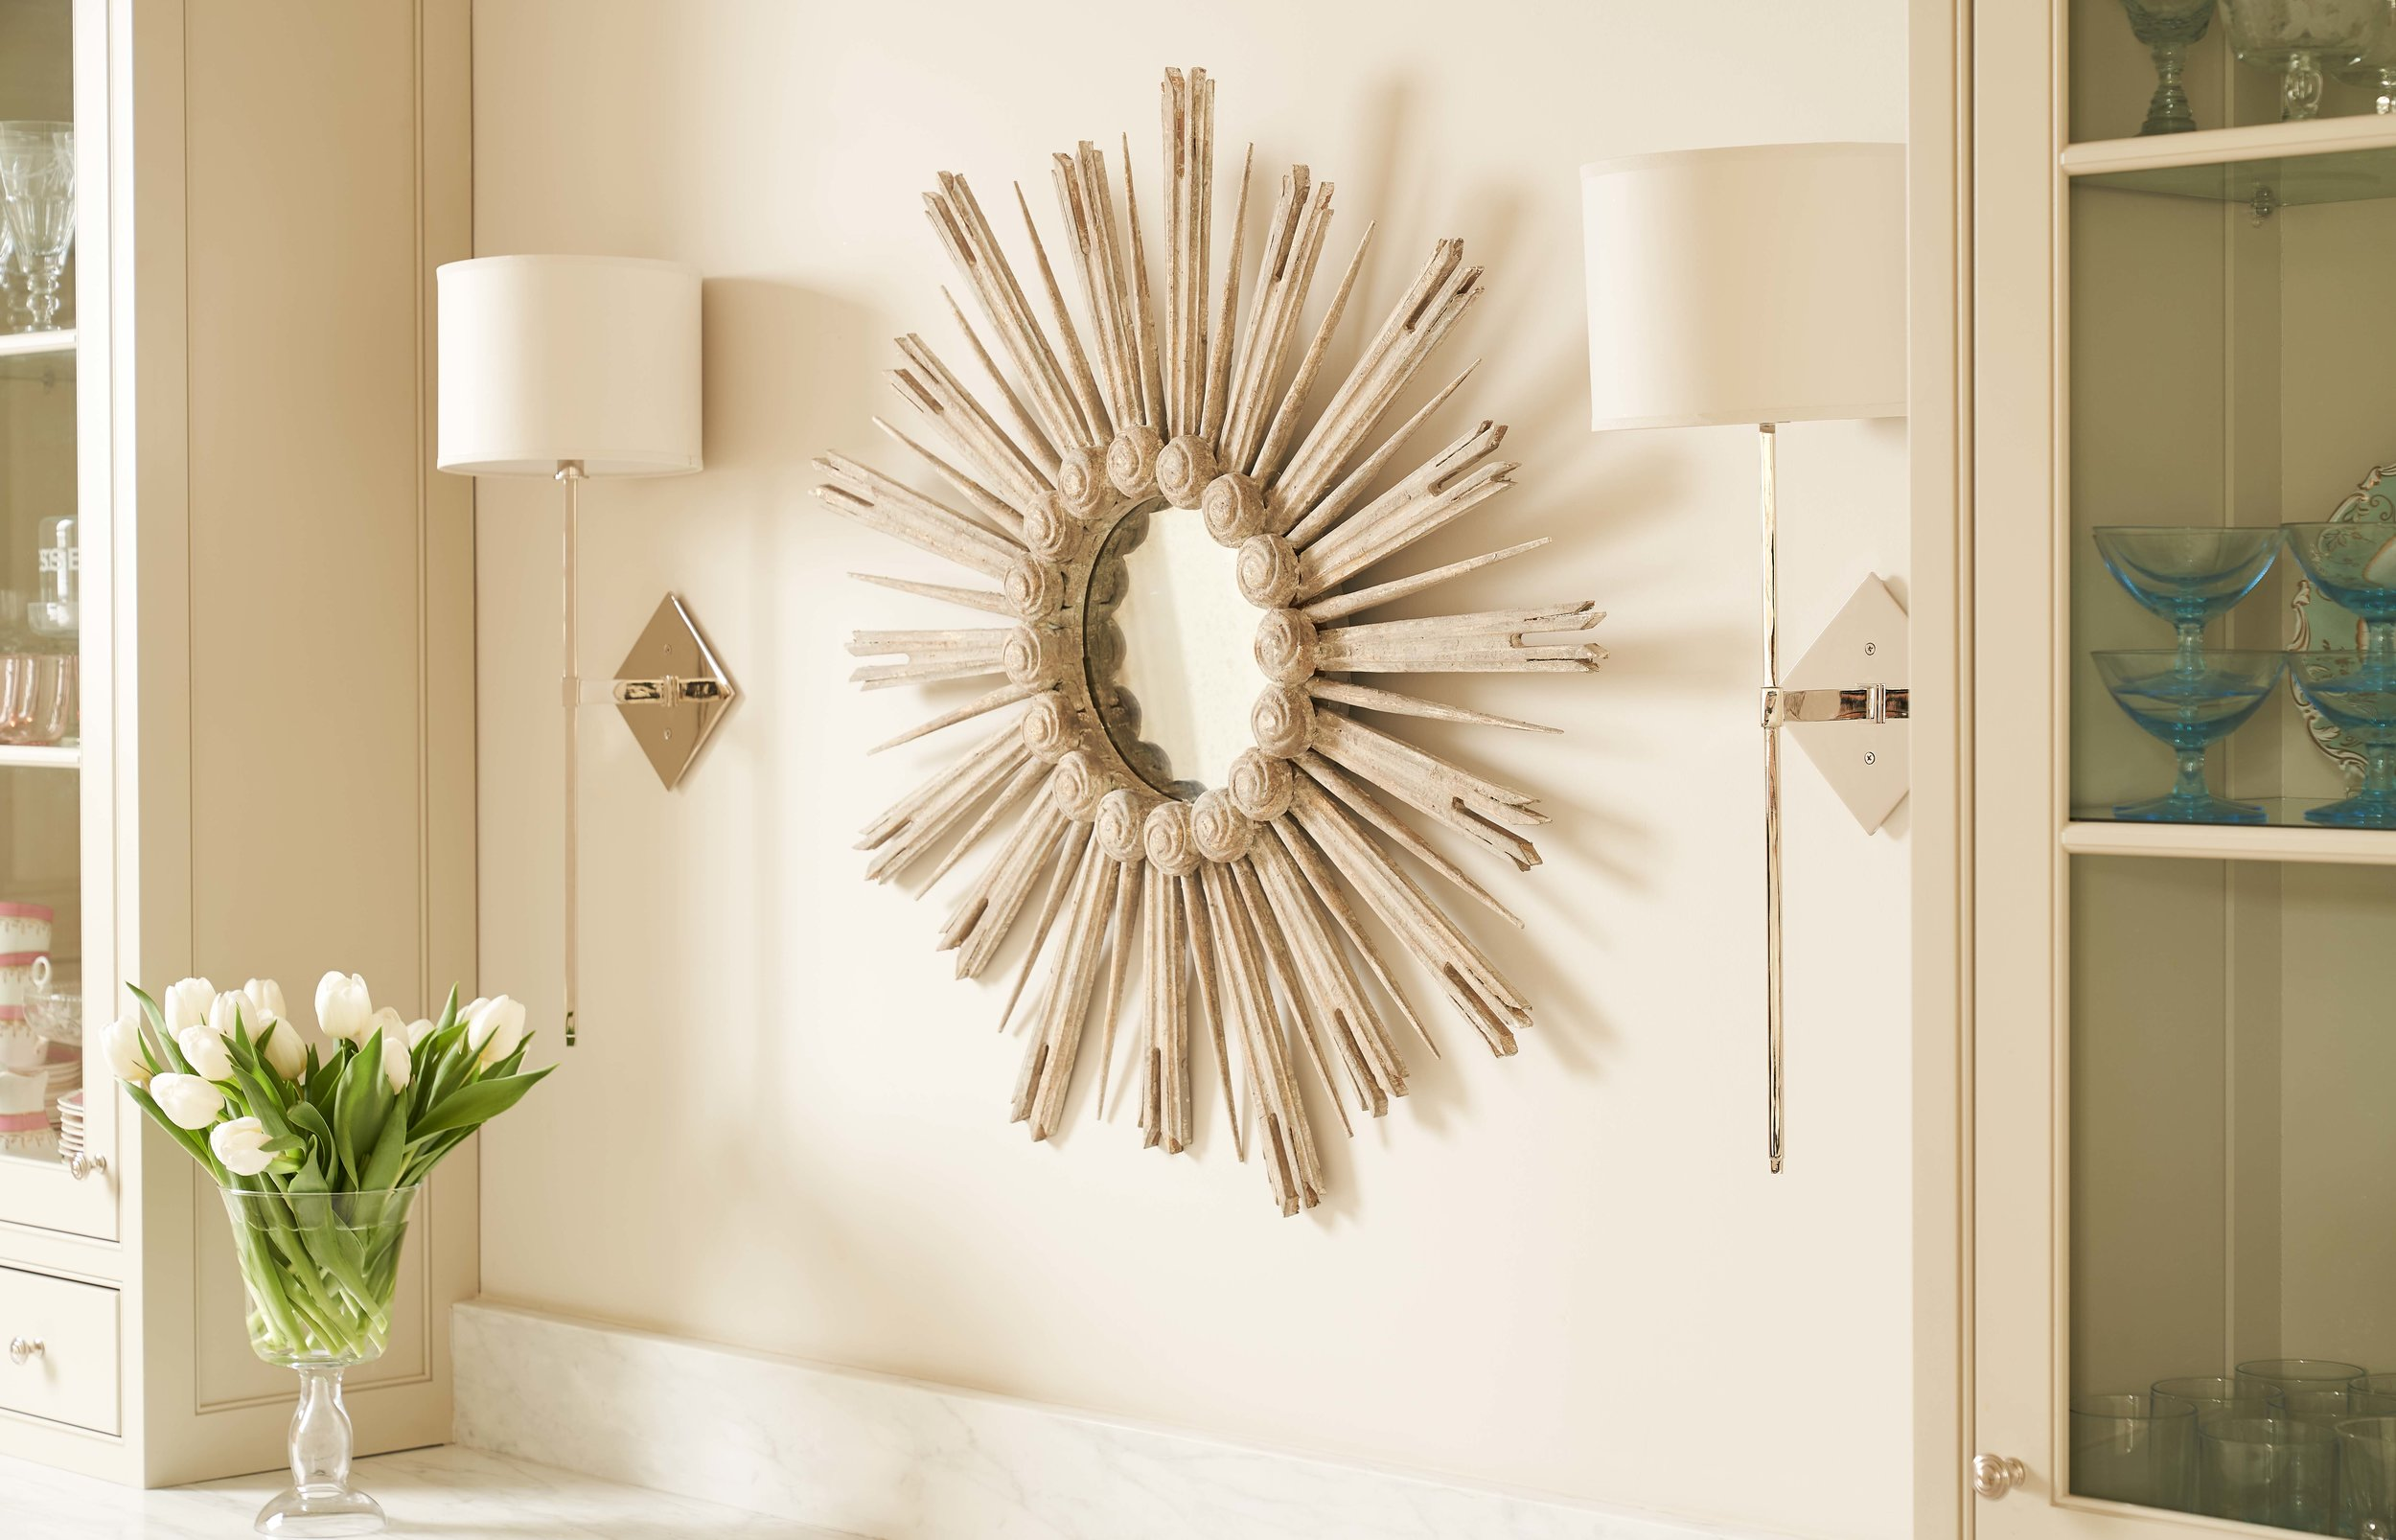 Starburst Mirror  895.00  Diamond Sconce, Available in Polished Nickel and Brass  495.00